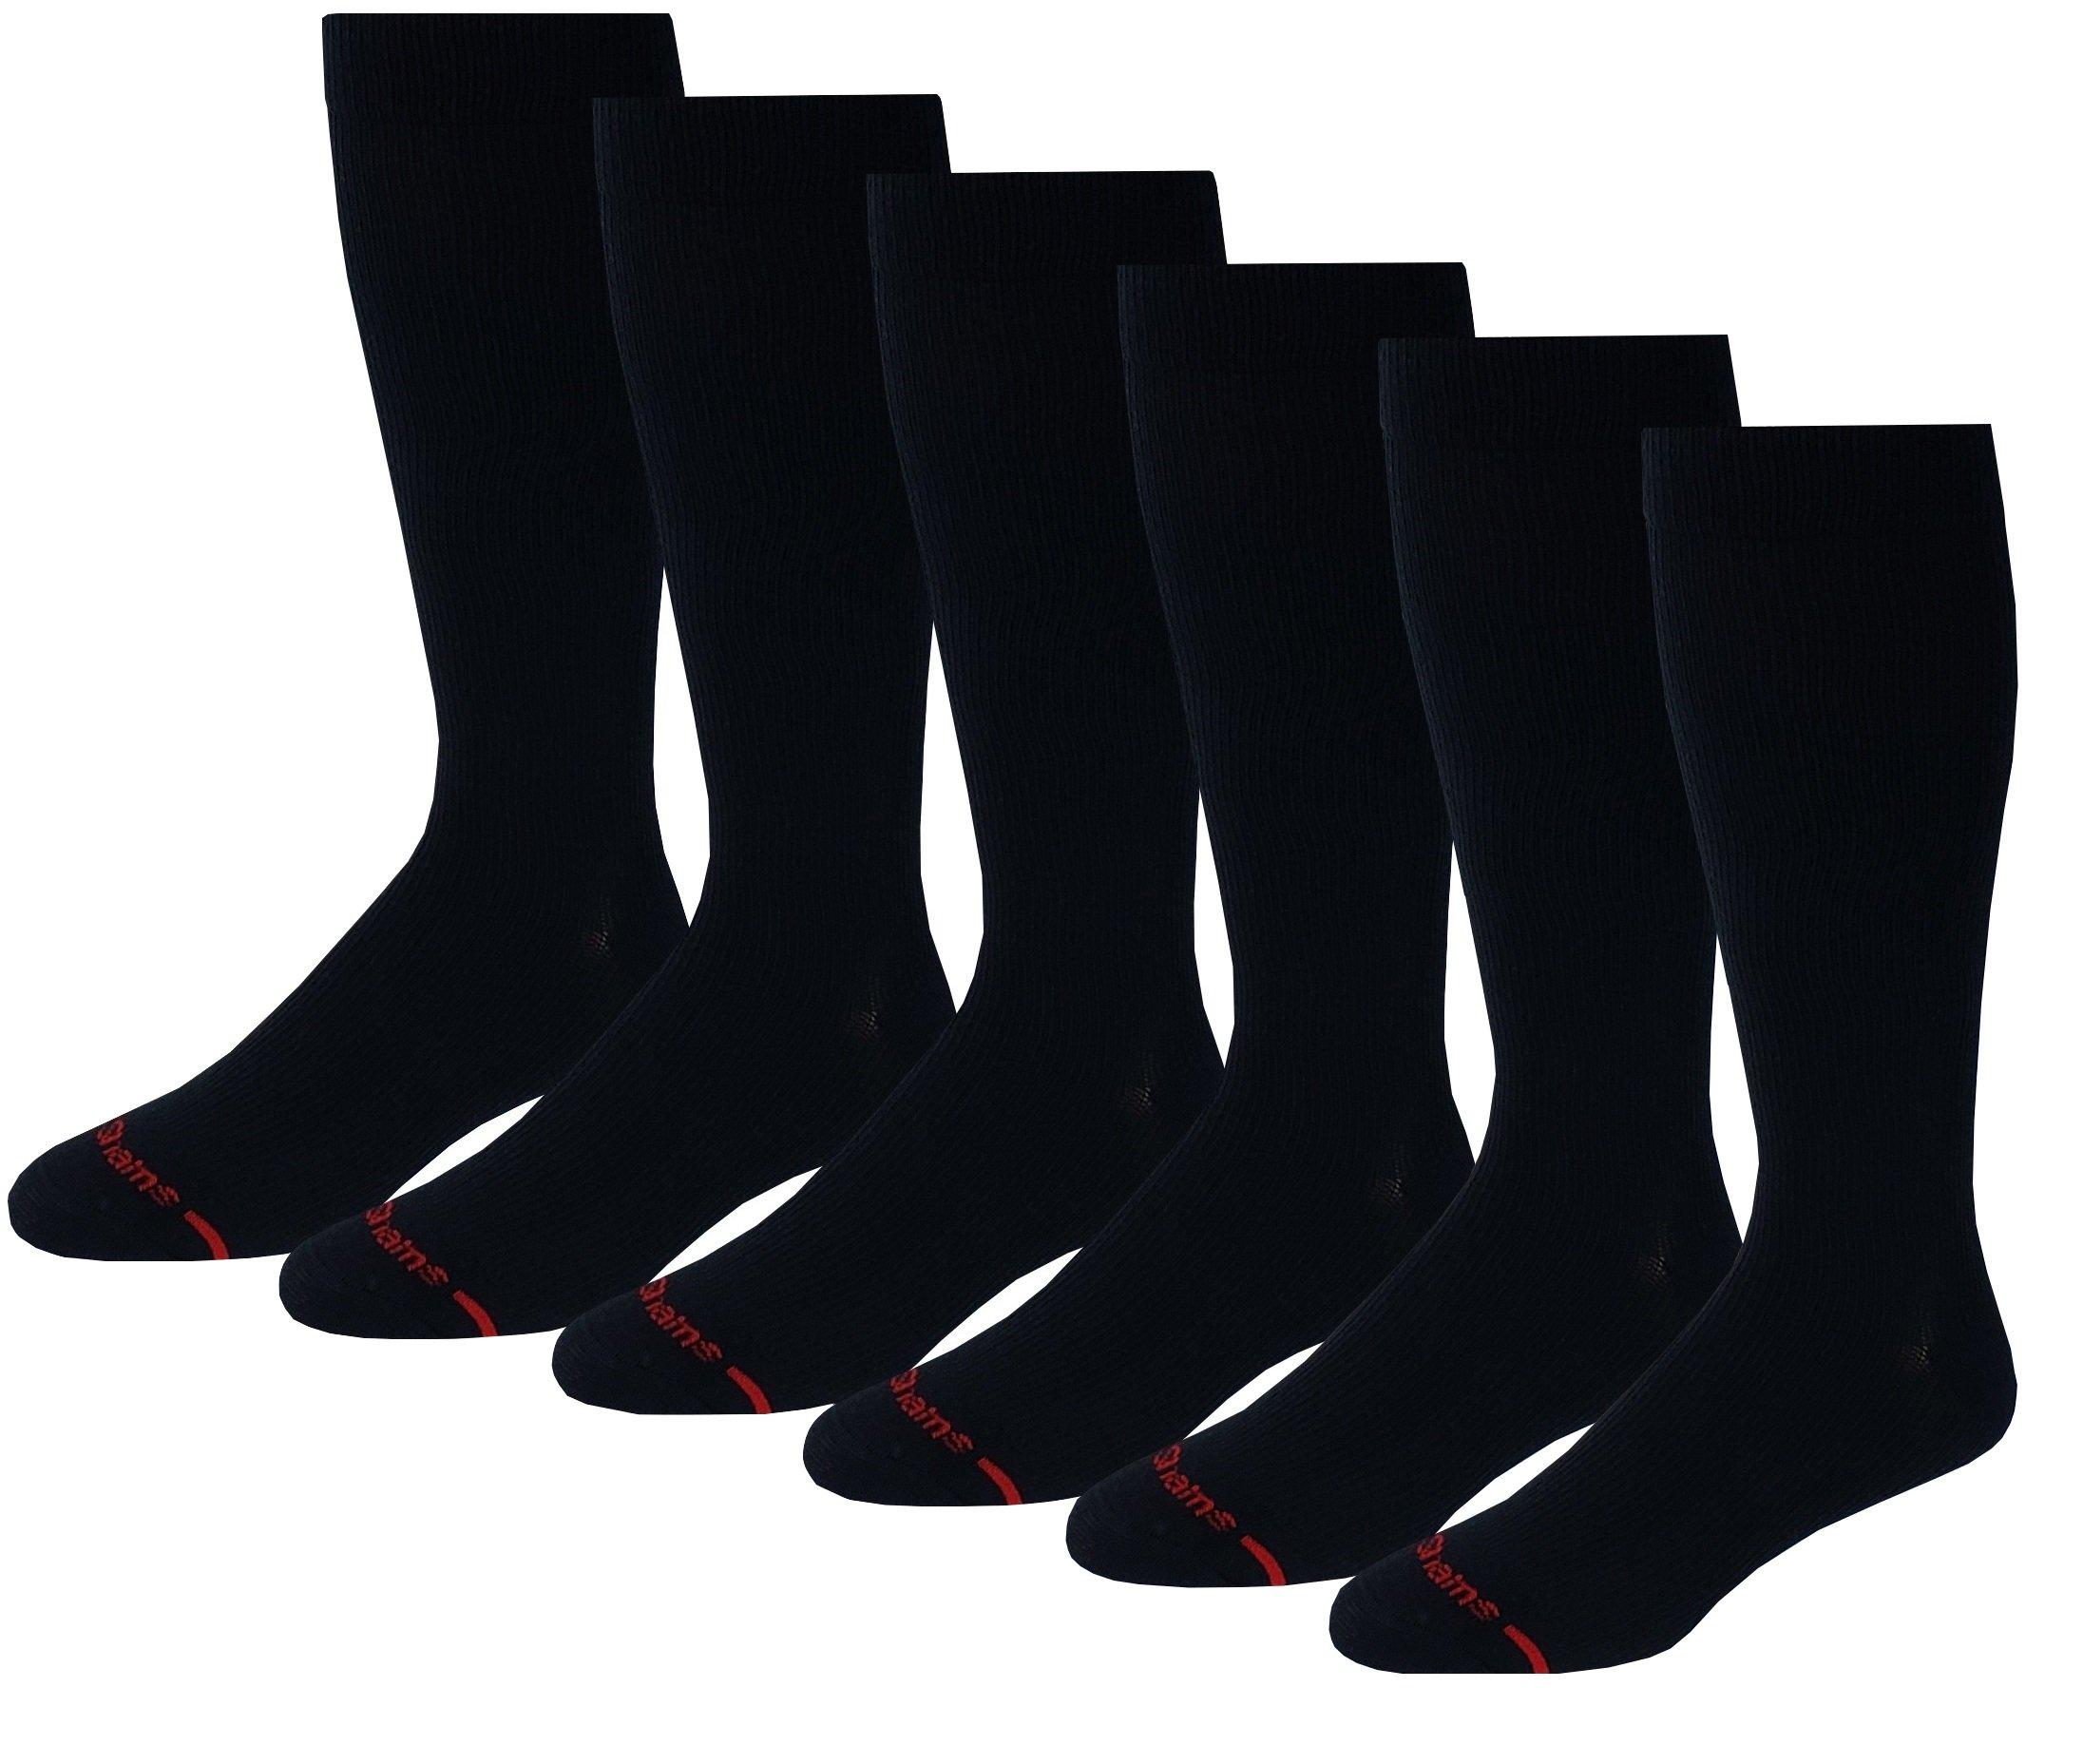 6 Pairs men's Dr. Motion 8-15 mmHg Graduated Supports Compression Knee High Socks - Sock size:(10-13) by Different Touch